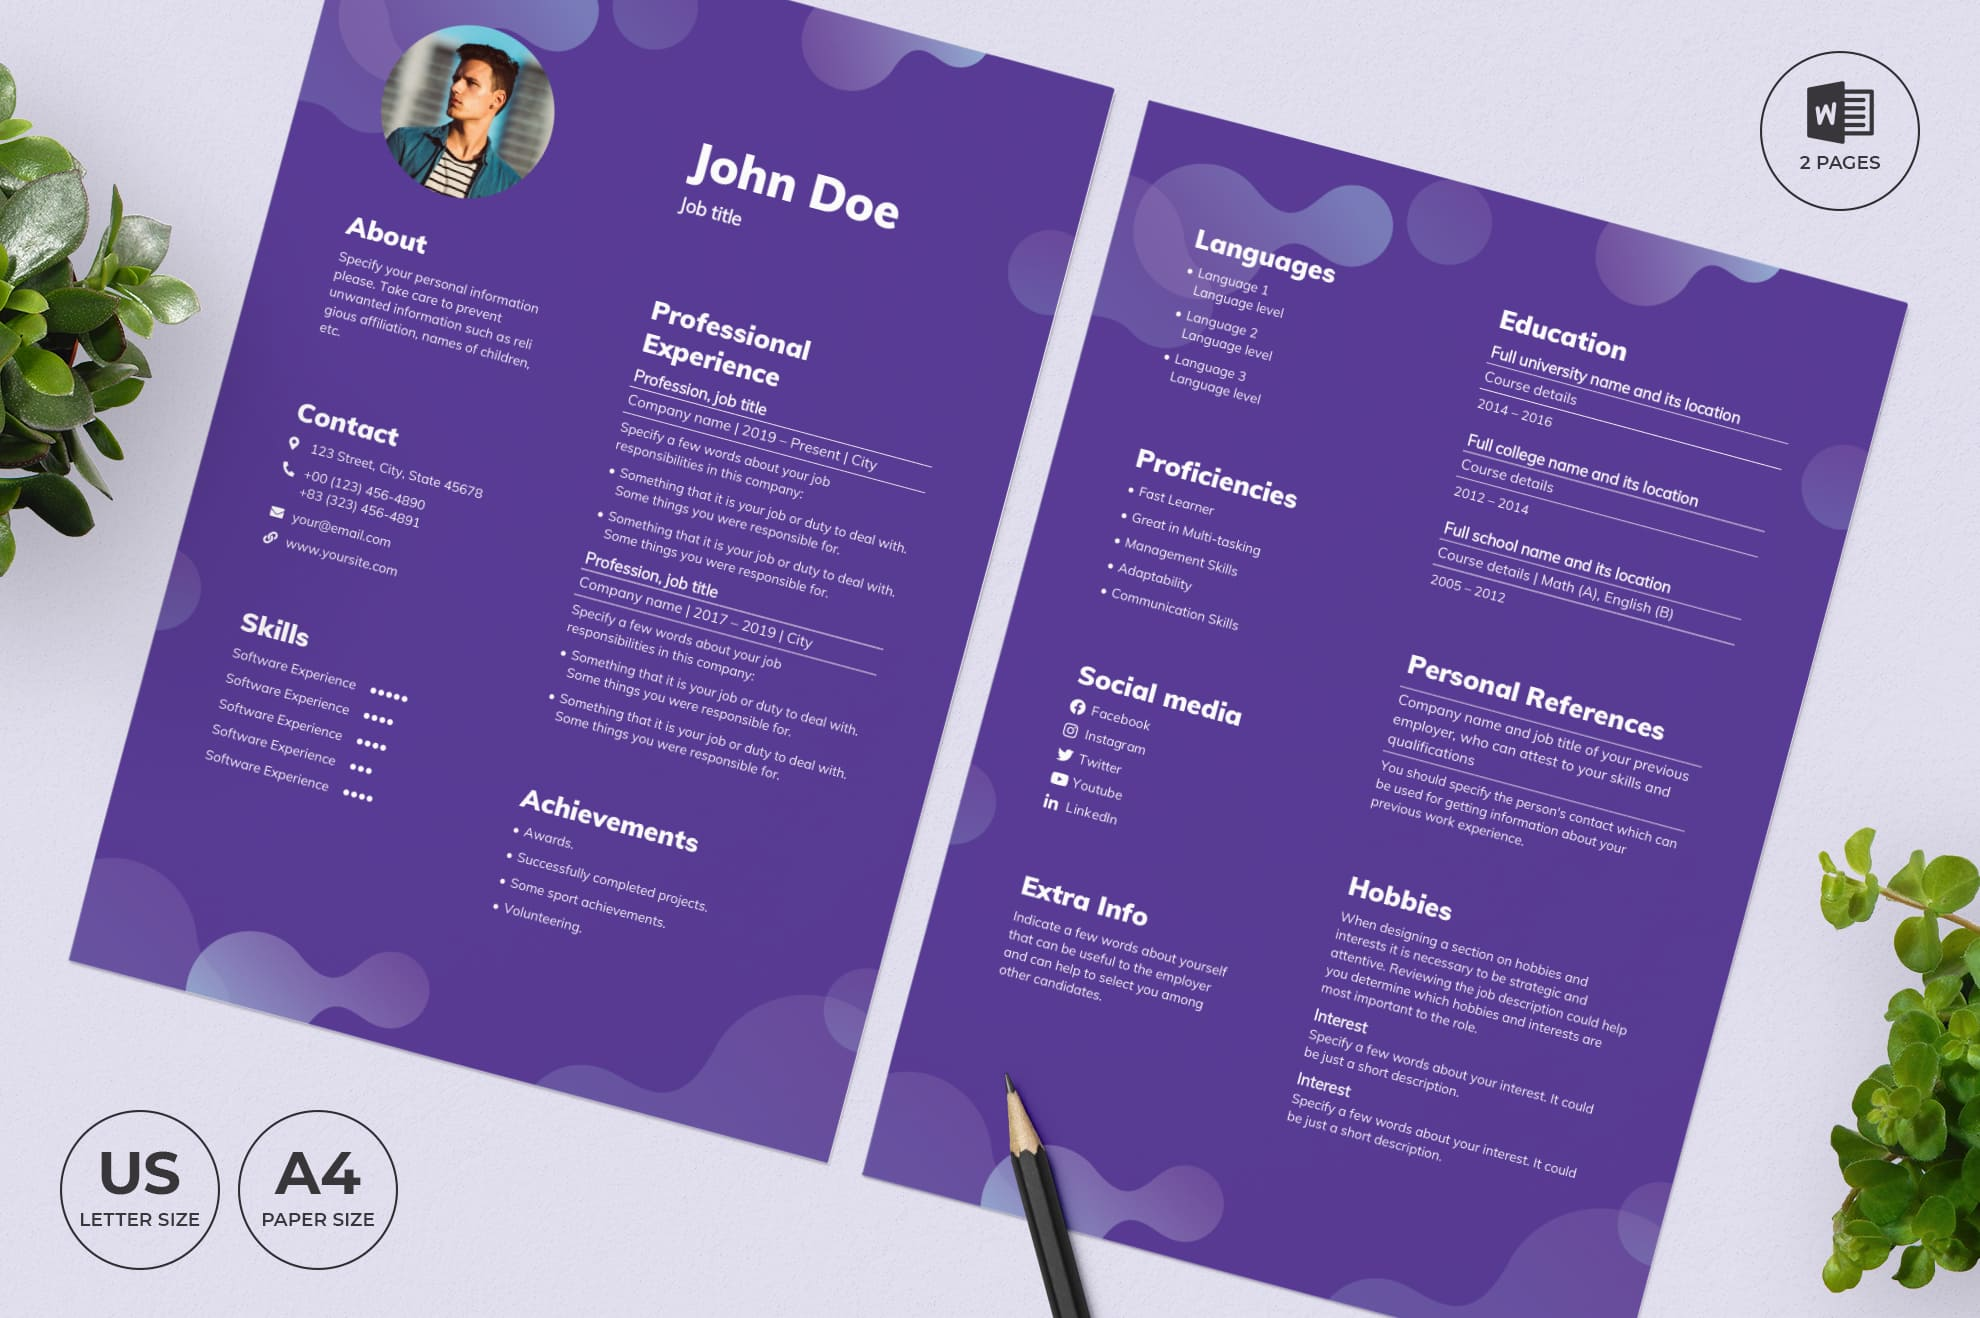 Cleaning Service CV Resume Template.